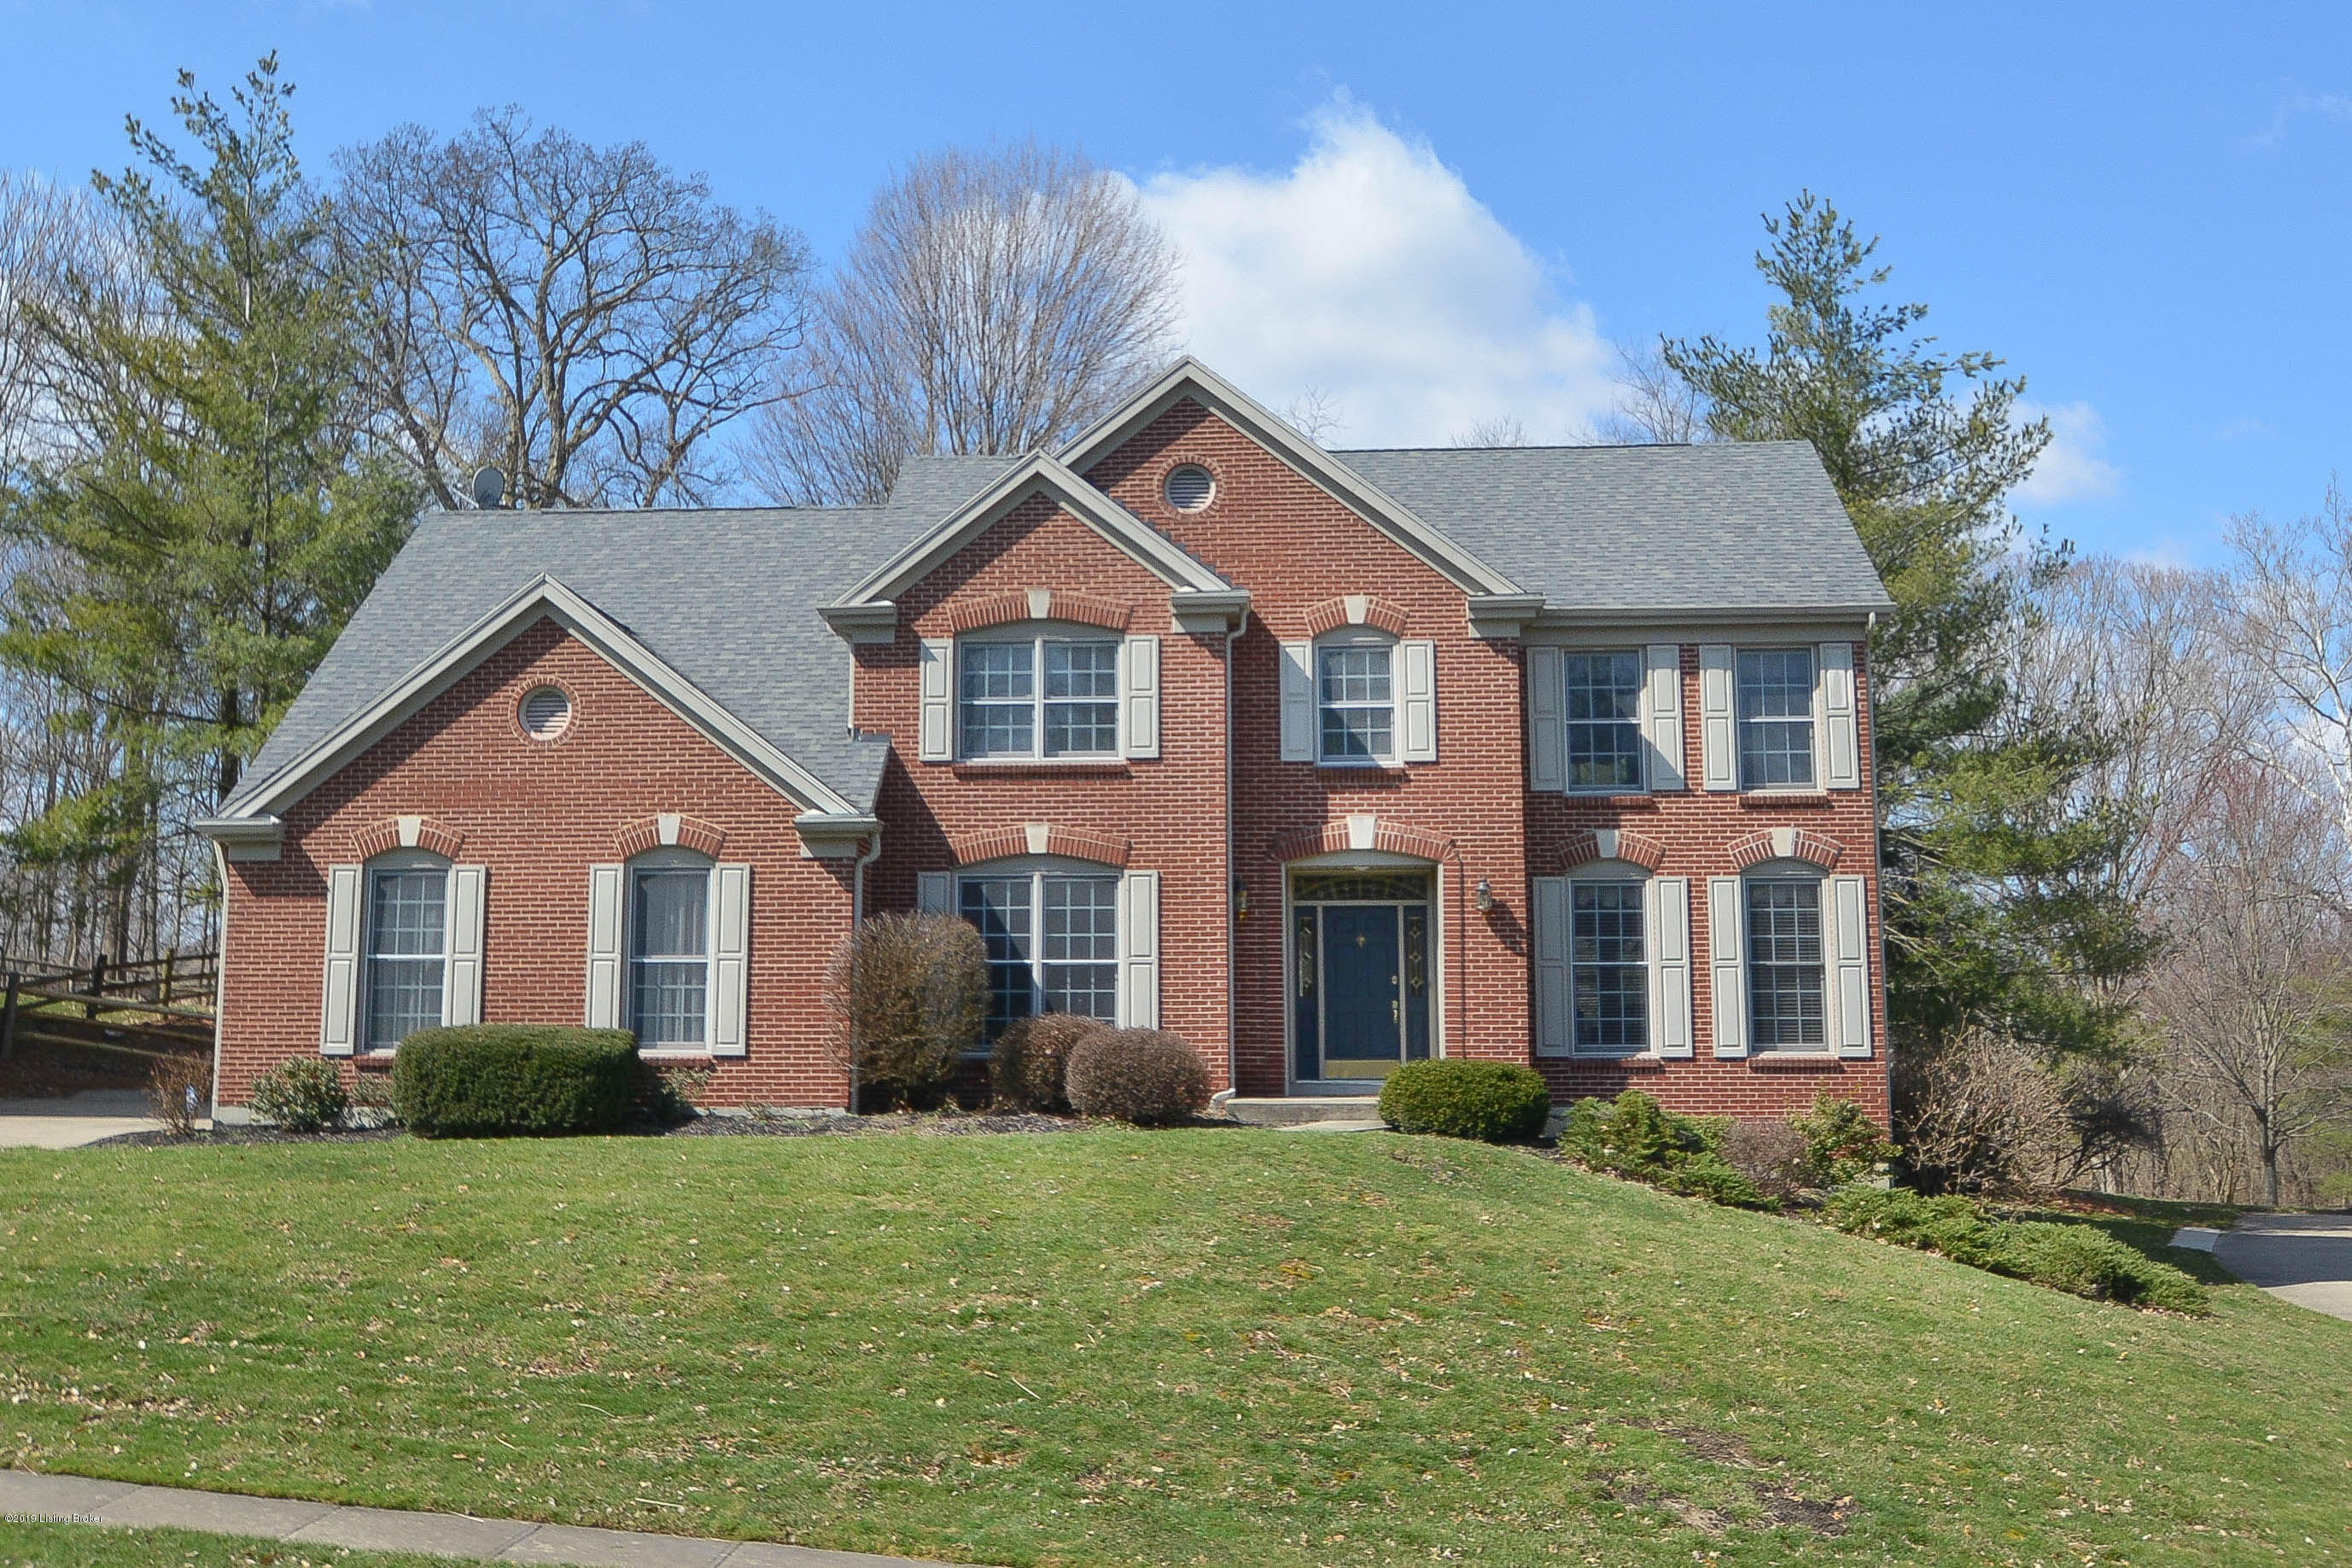 Photo of 10185 Glenfield Ct